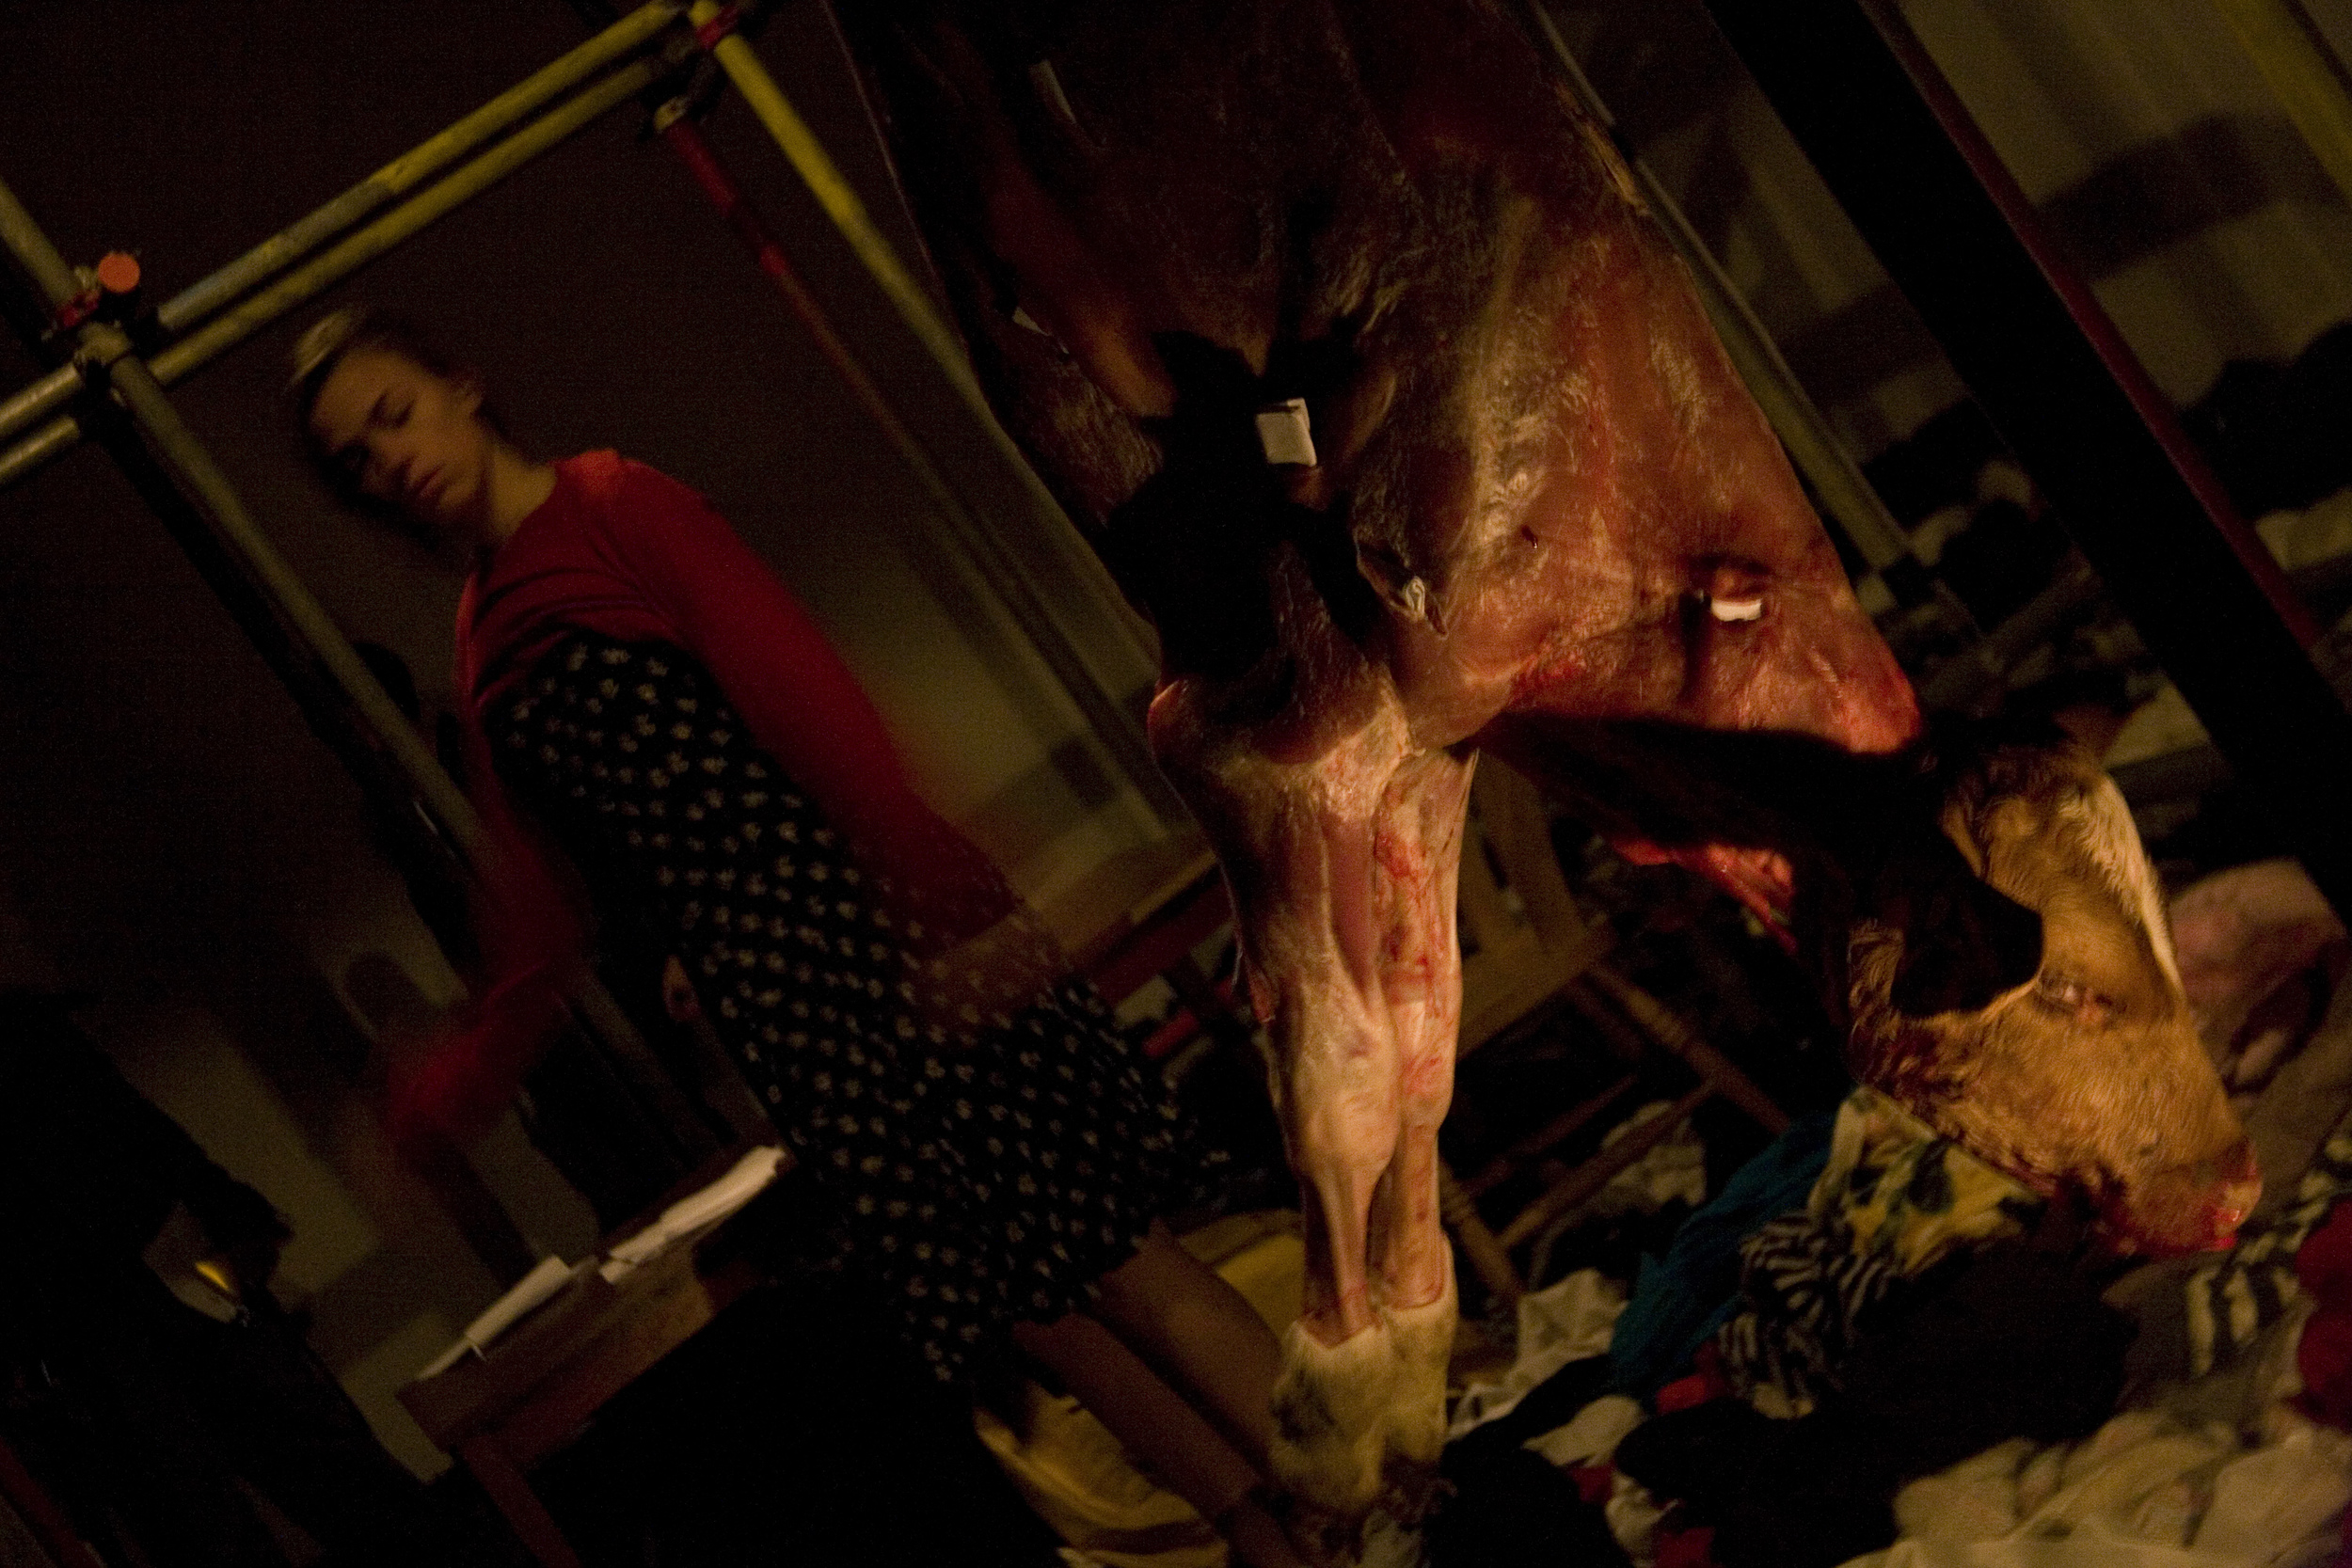 """Eloise Fornieles performing """"Carrion"""" at Paradise Row Gallery in London, United Kingdom in 2008. Photograph by David Birkin"""